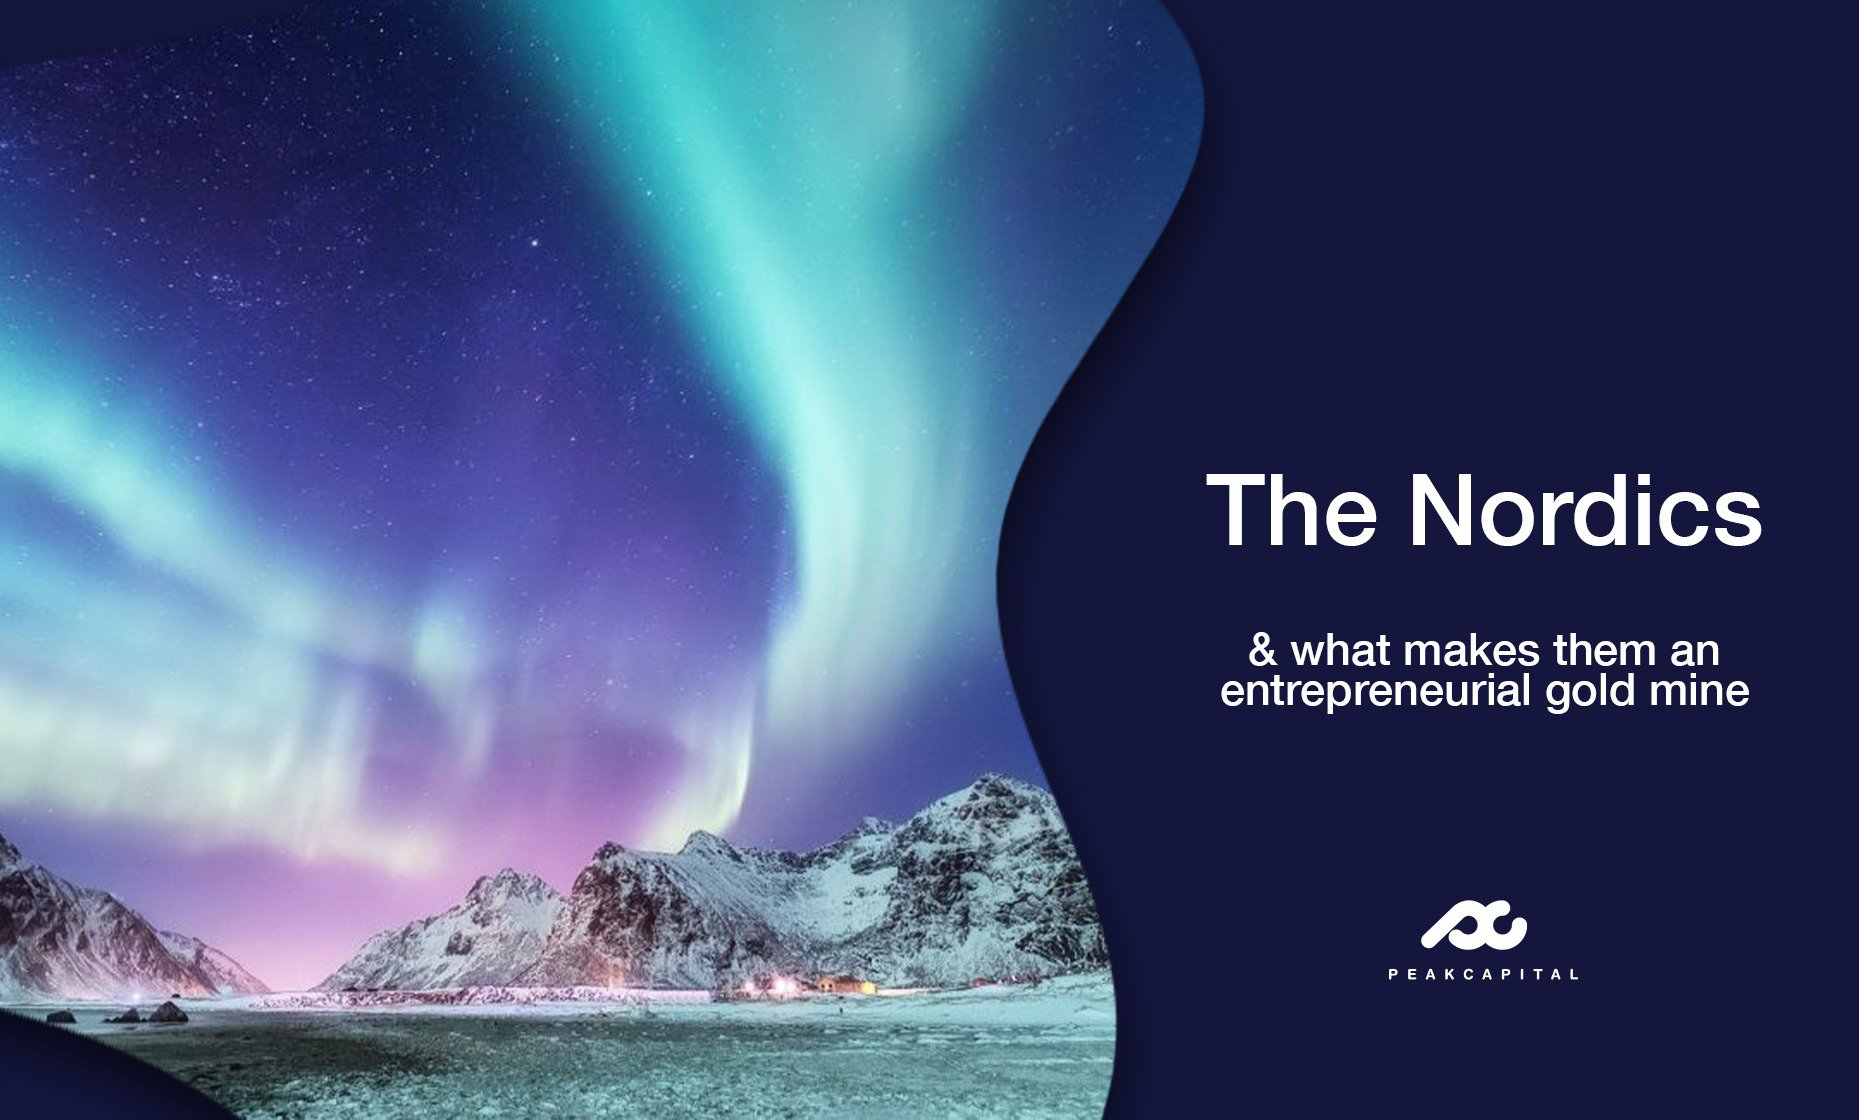 Why the Nordics are an entrepreneurial gold mine